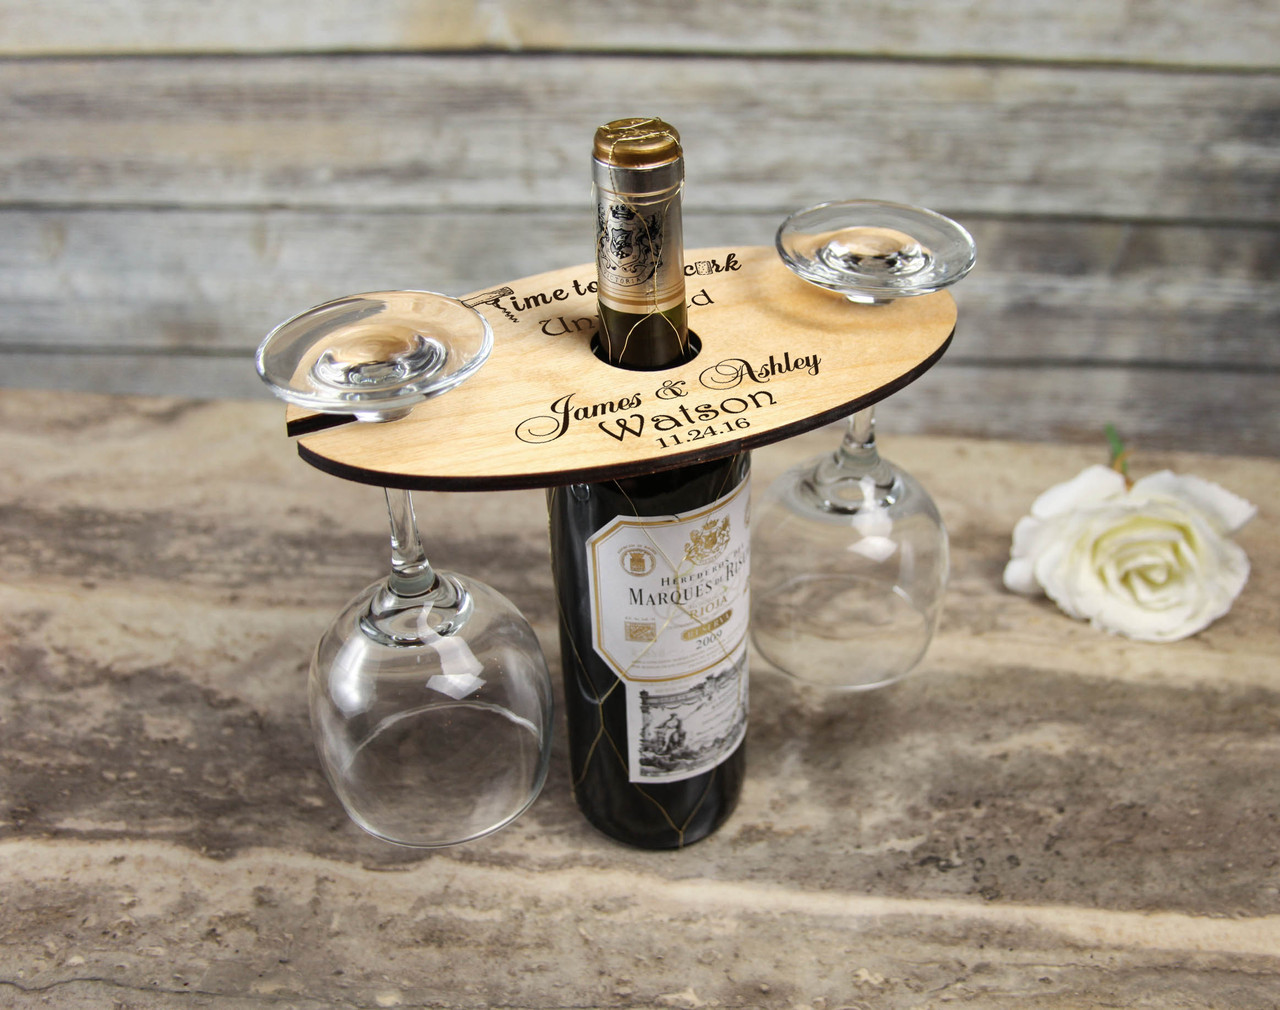 Groupon AU/NZ - Personalized Wine Caddy & Glass holder - Time to uncork